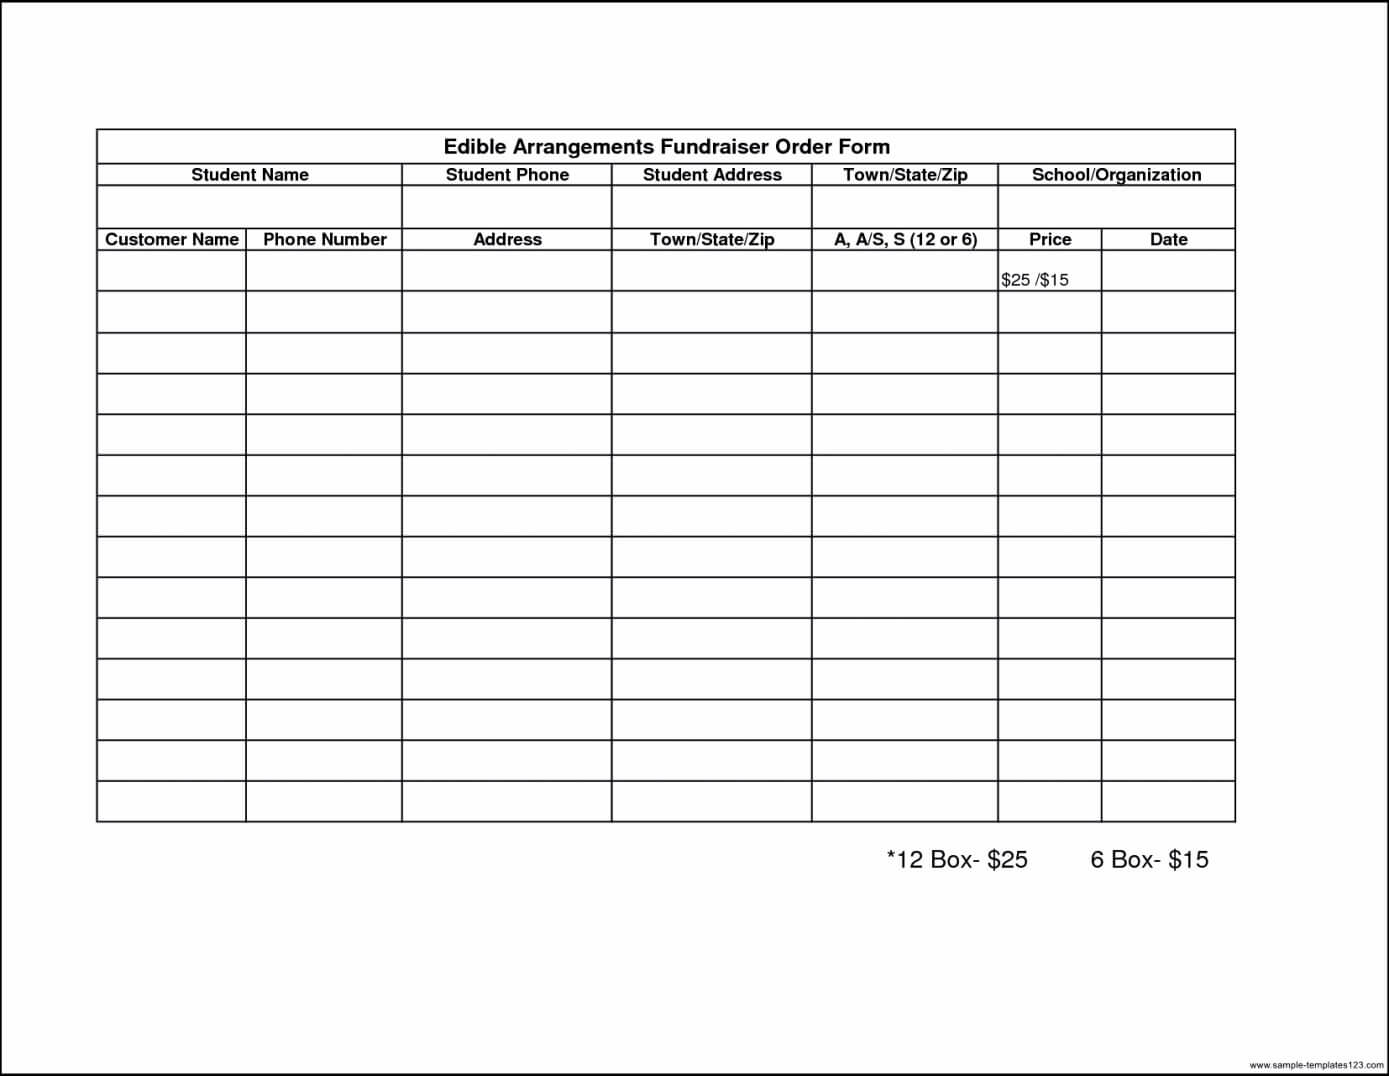 010 Blank Fundraiser Order Form Template Final Photos Intended For Blank Fundraiser Order Form Template